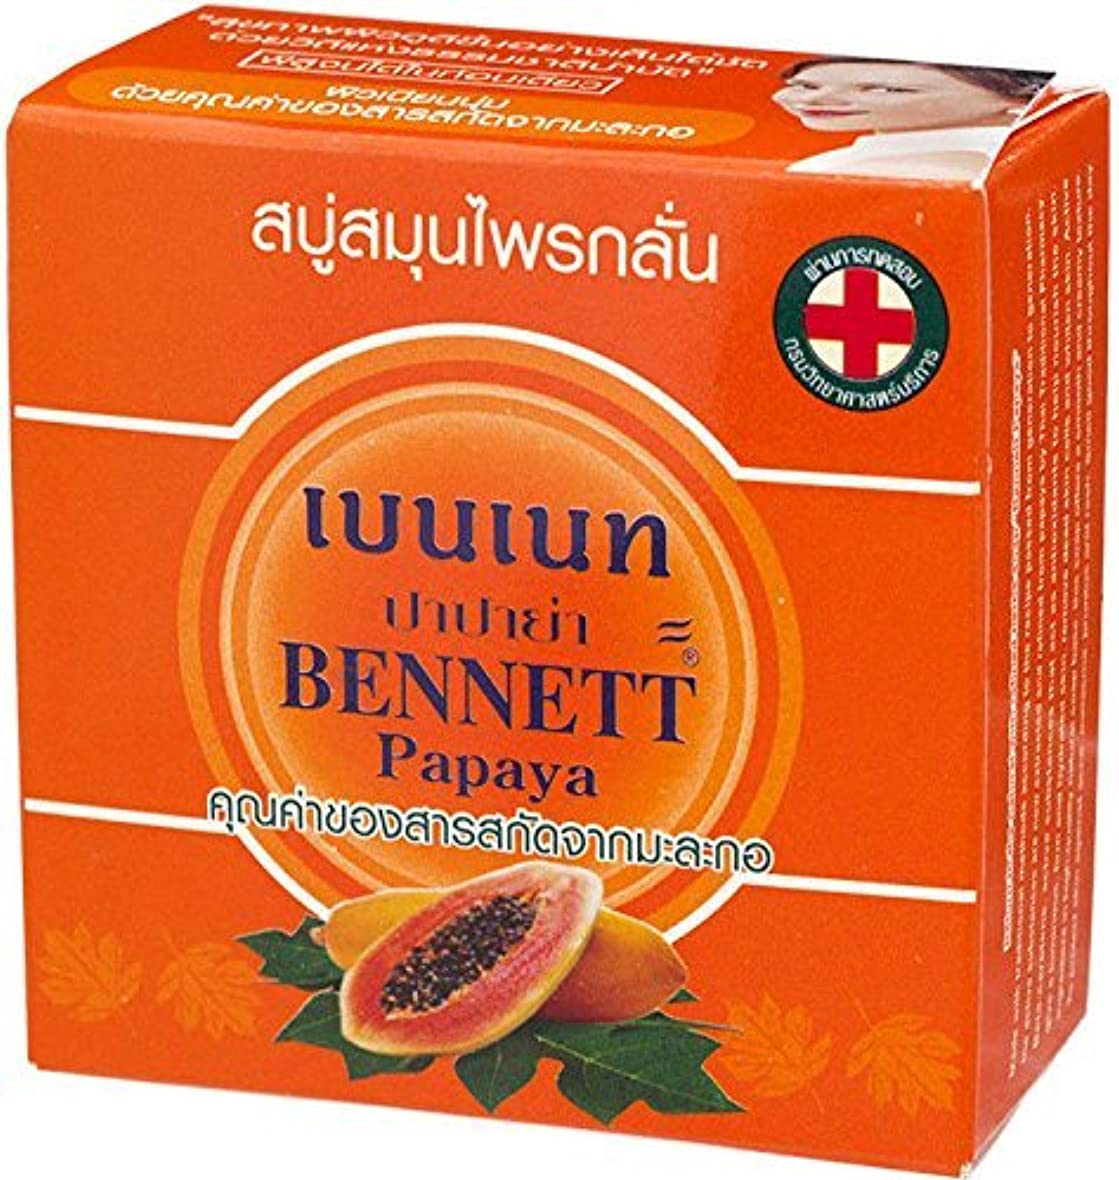 再生可能動処方するPARROT HERBAL NATURAL EXTRACT THAI PAPAYA PLUS ALOE VERA AND HONEY SOAP BAR 75G [並行輸入品]